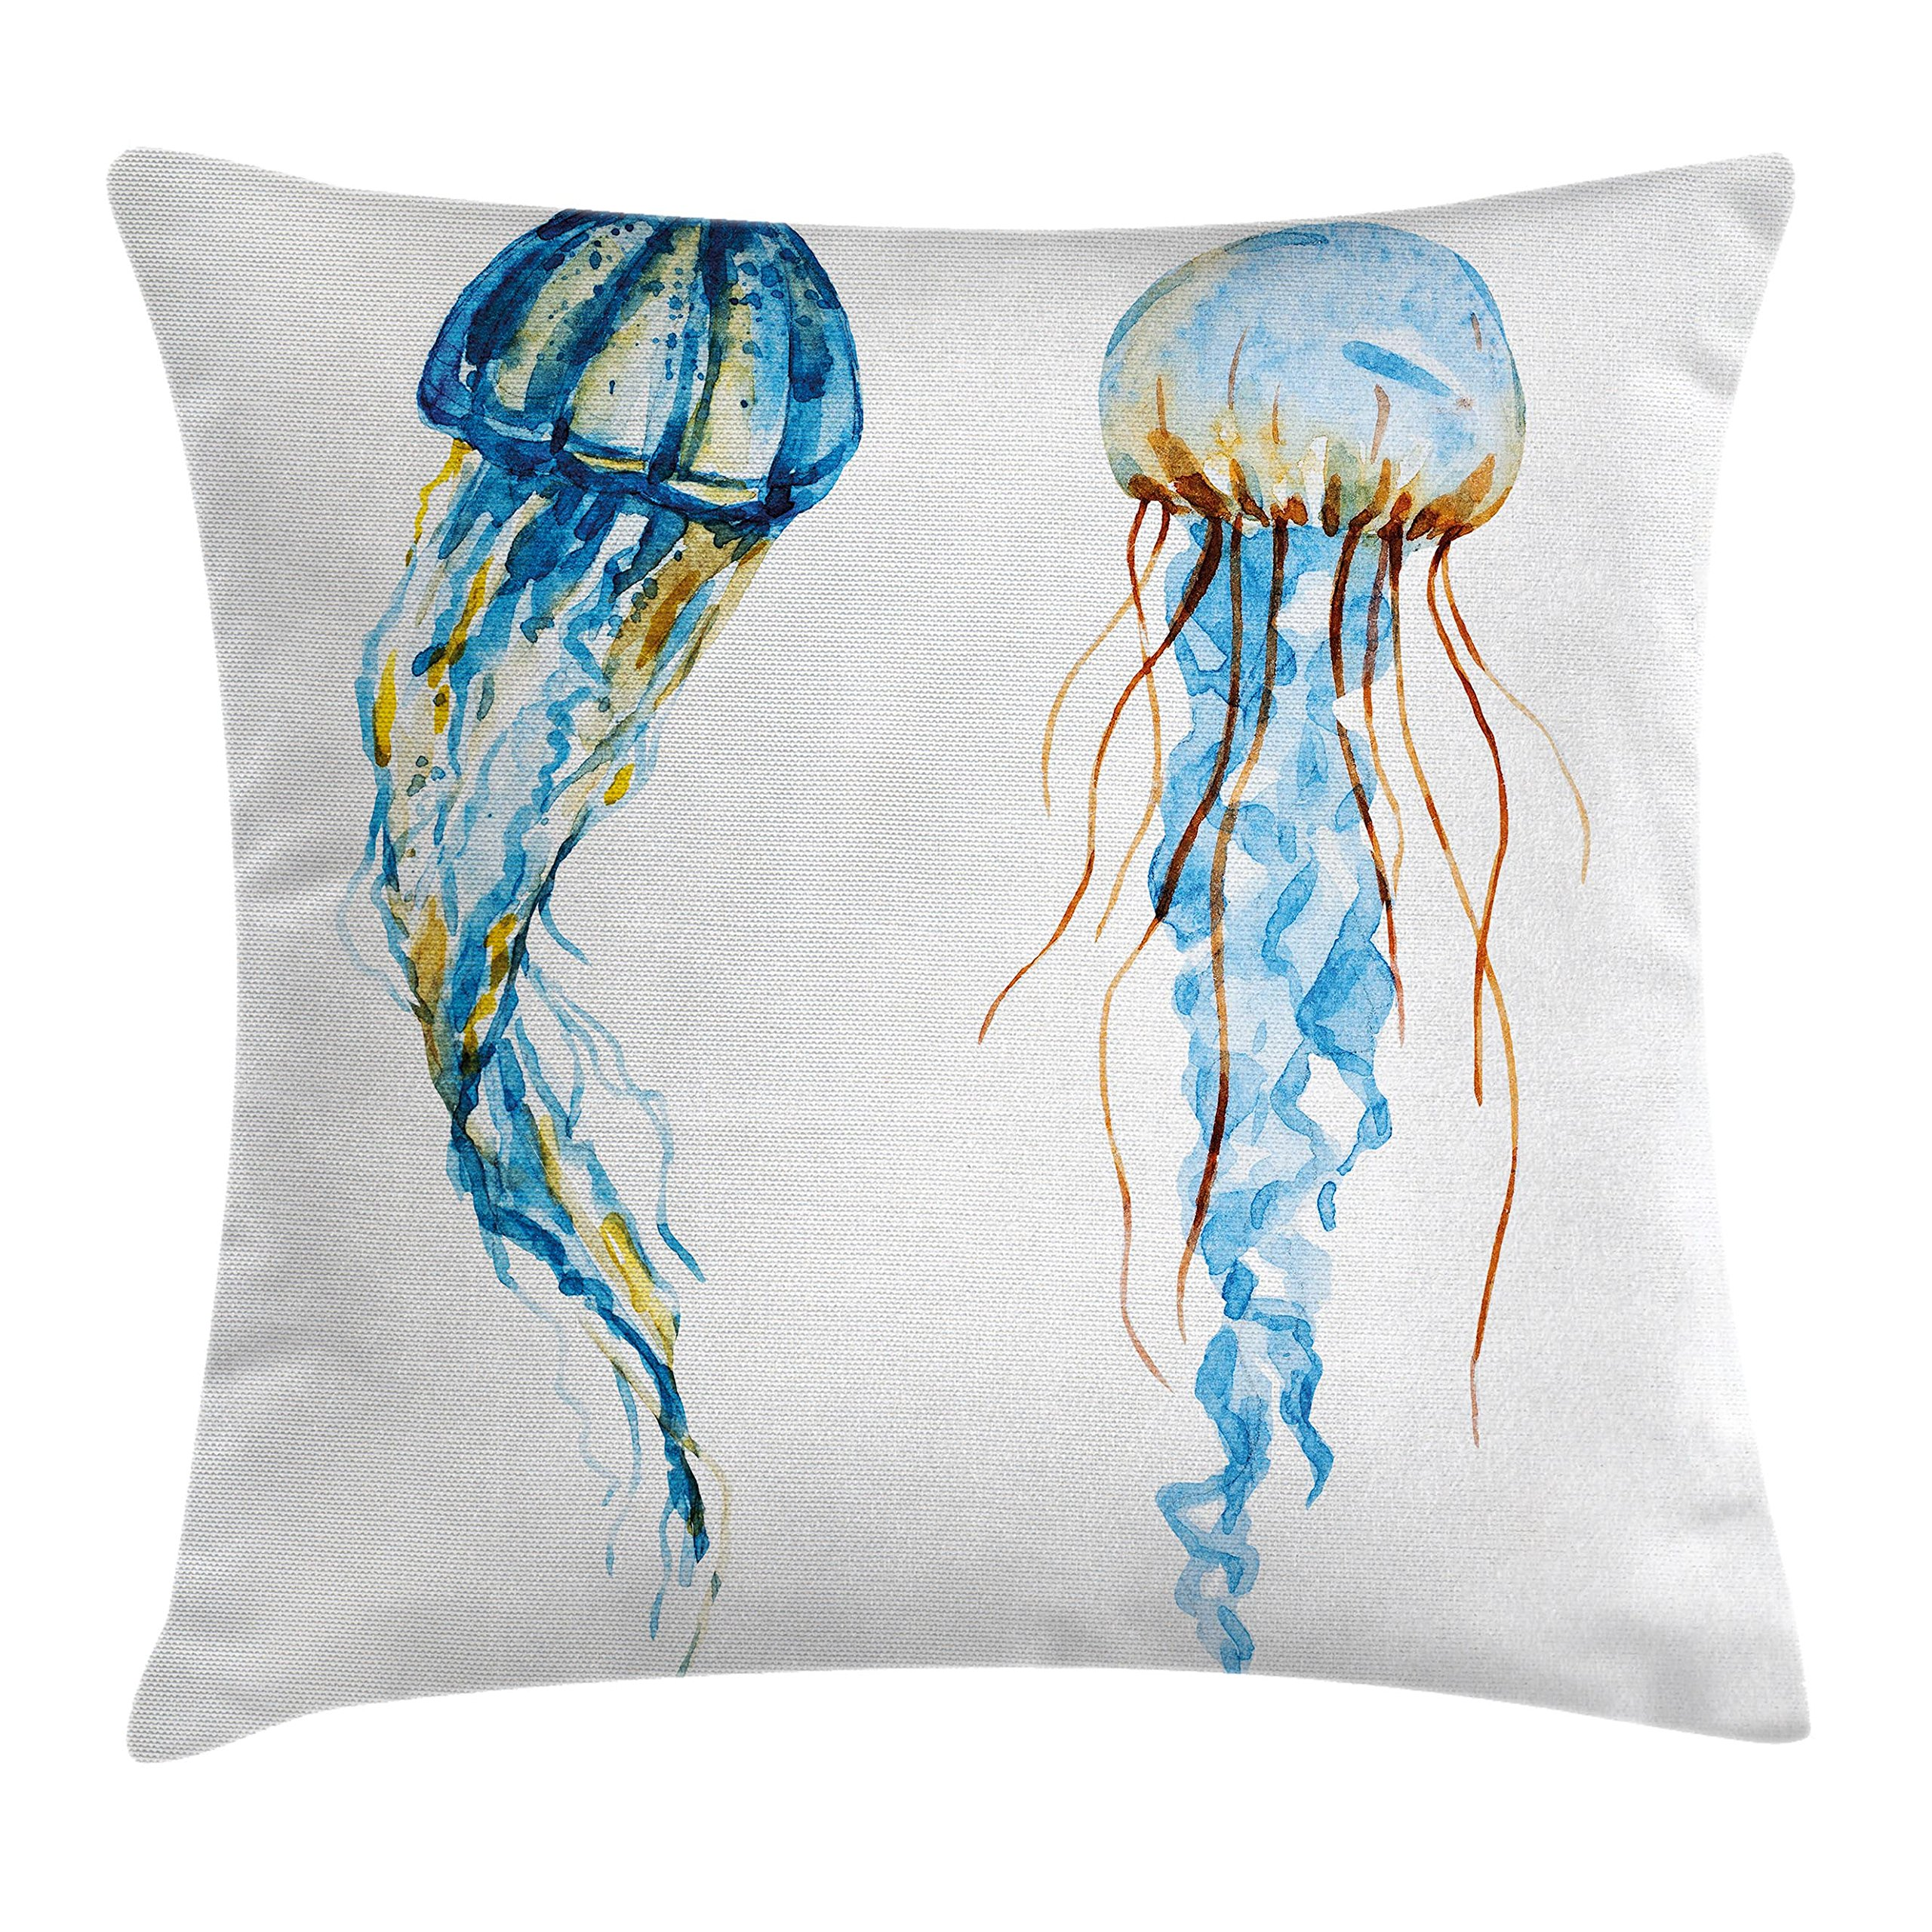 Ambesonne Nautical Decor Throw Pillow Cushion Cover, Cute Jellyfish Exotic Sea Ocean Creature Aquatic Animals Watercolor Raster Graphic, Decorative Square Accent Pillow Case, 24 X 24 Inches, Blue